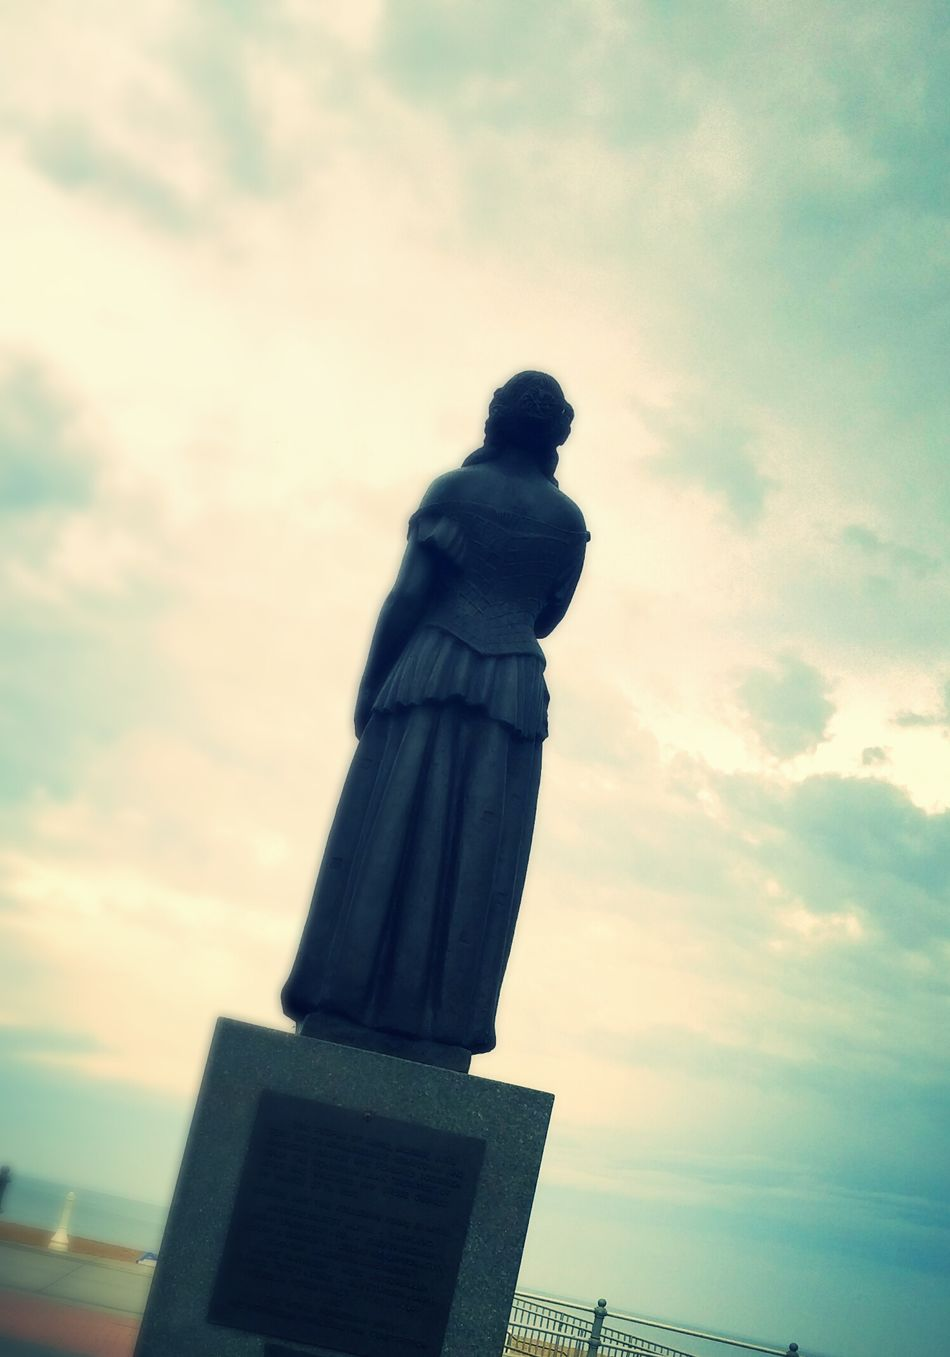 Statue Looking Out To Sea. Virginia Beach